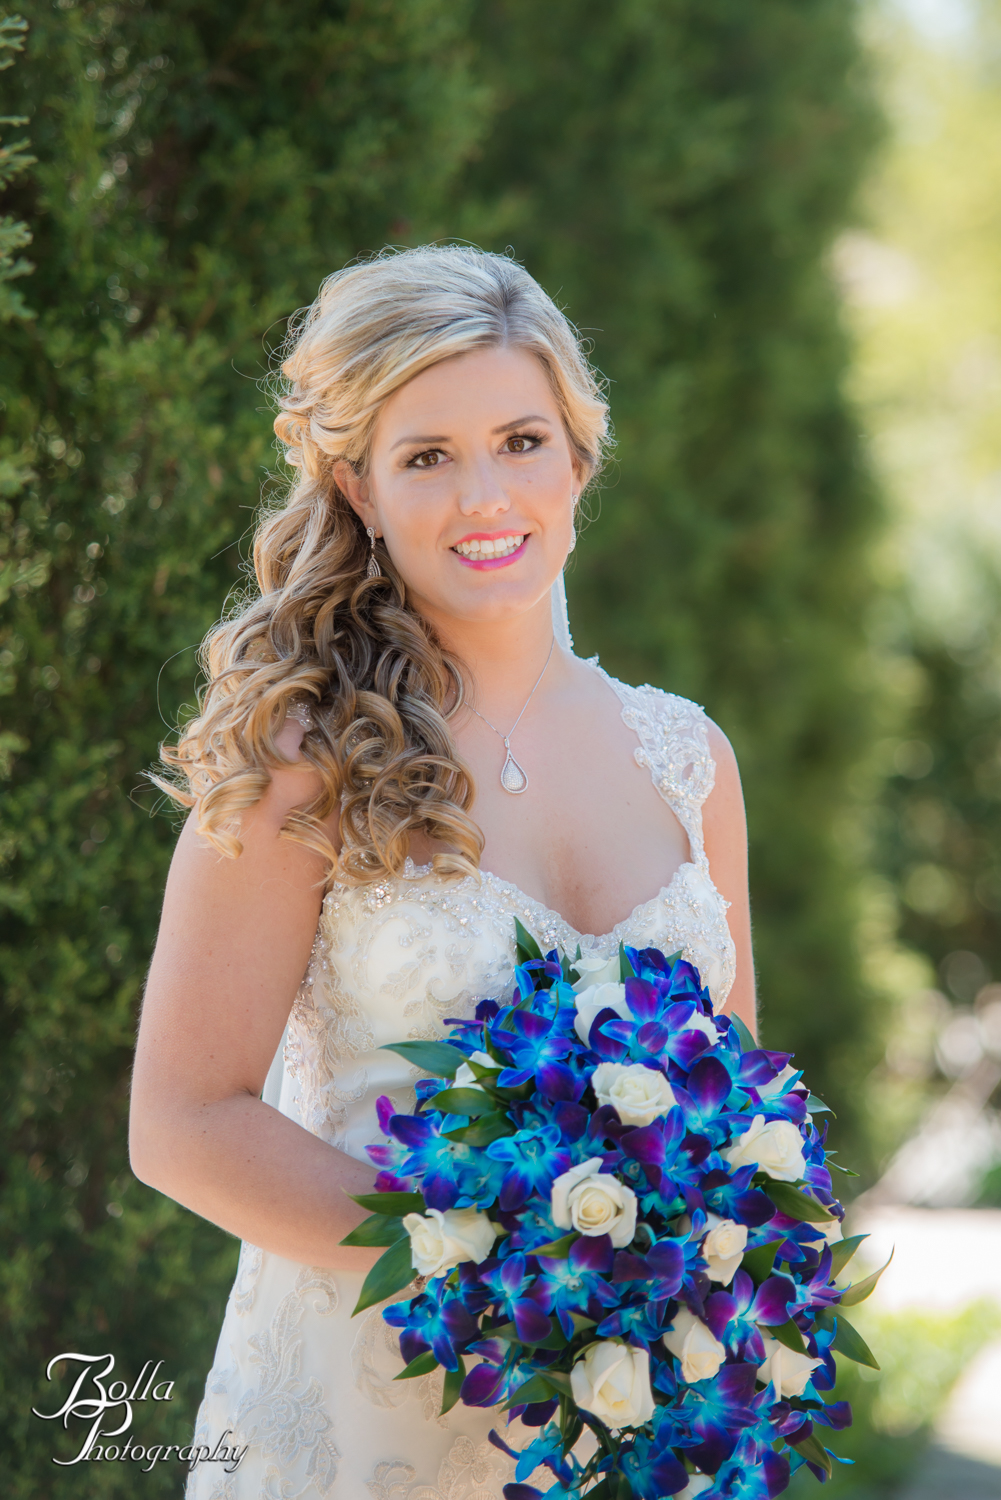 Bolla_Photography_St_Louis_wedding_photographer_Morgando_Blues_hockey_Botanical_Gardens_spring-0049.jpg